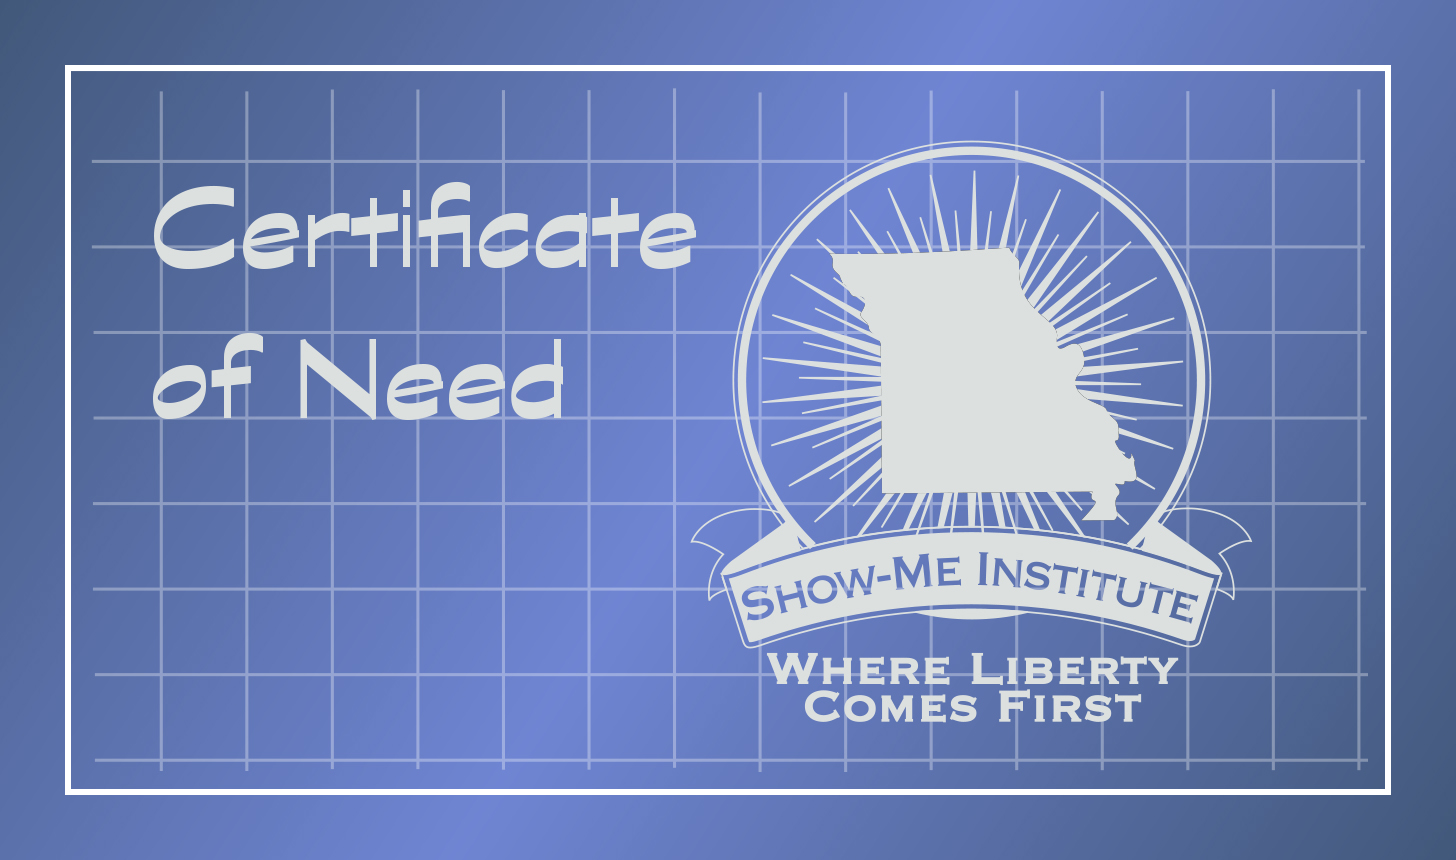 2018 blueprint certificate of need show me institute 2018 blueprint certificate of need malvernweather Images